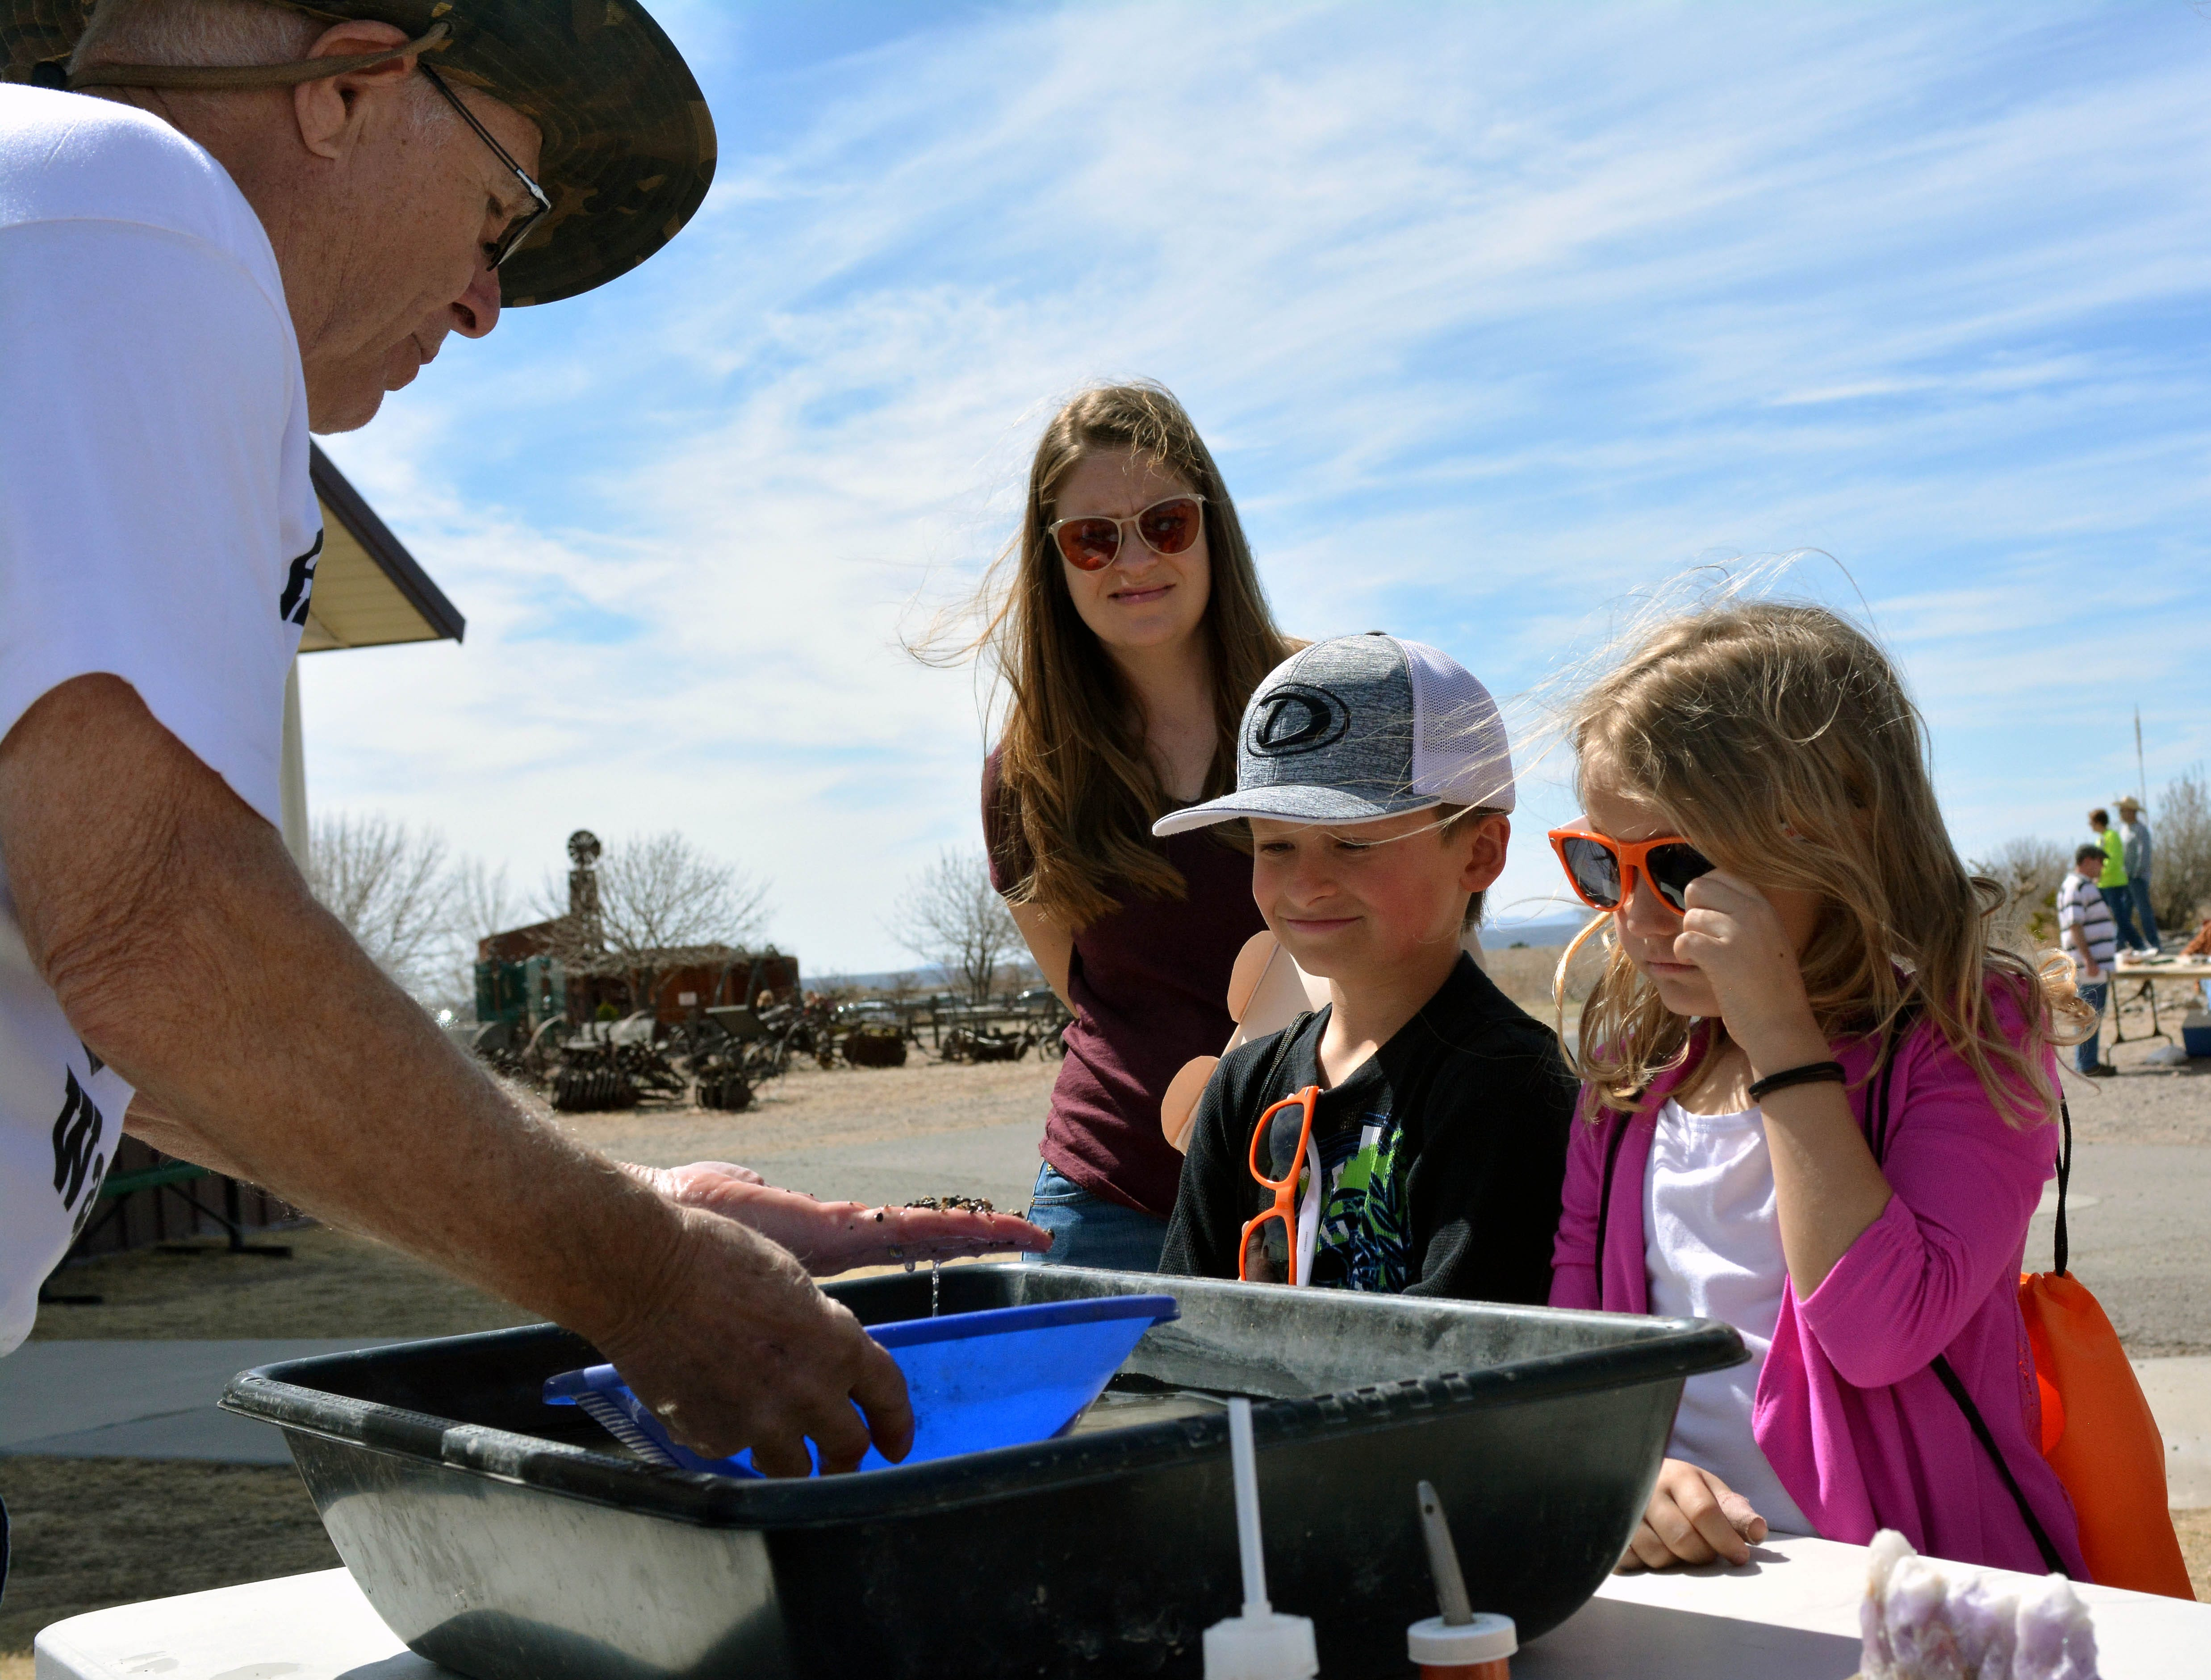 New Mexico Gold Prospectors member JIm Frederick shows Jenni Kosni, from left, Grady Cline and Presley Hart how to pan for gold during the 20th annual Cowboy Days held Saturday, March 2, 2019, at the New Mexico Farm and Ranch Heritage Museum.